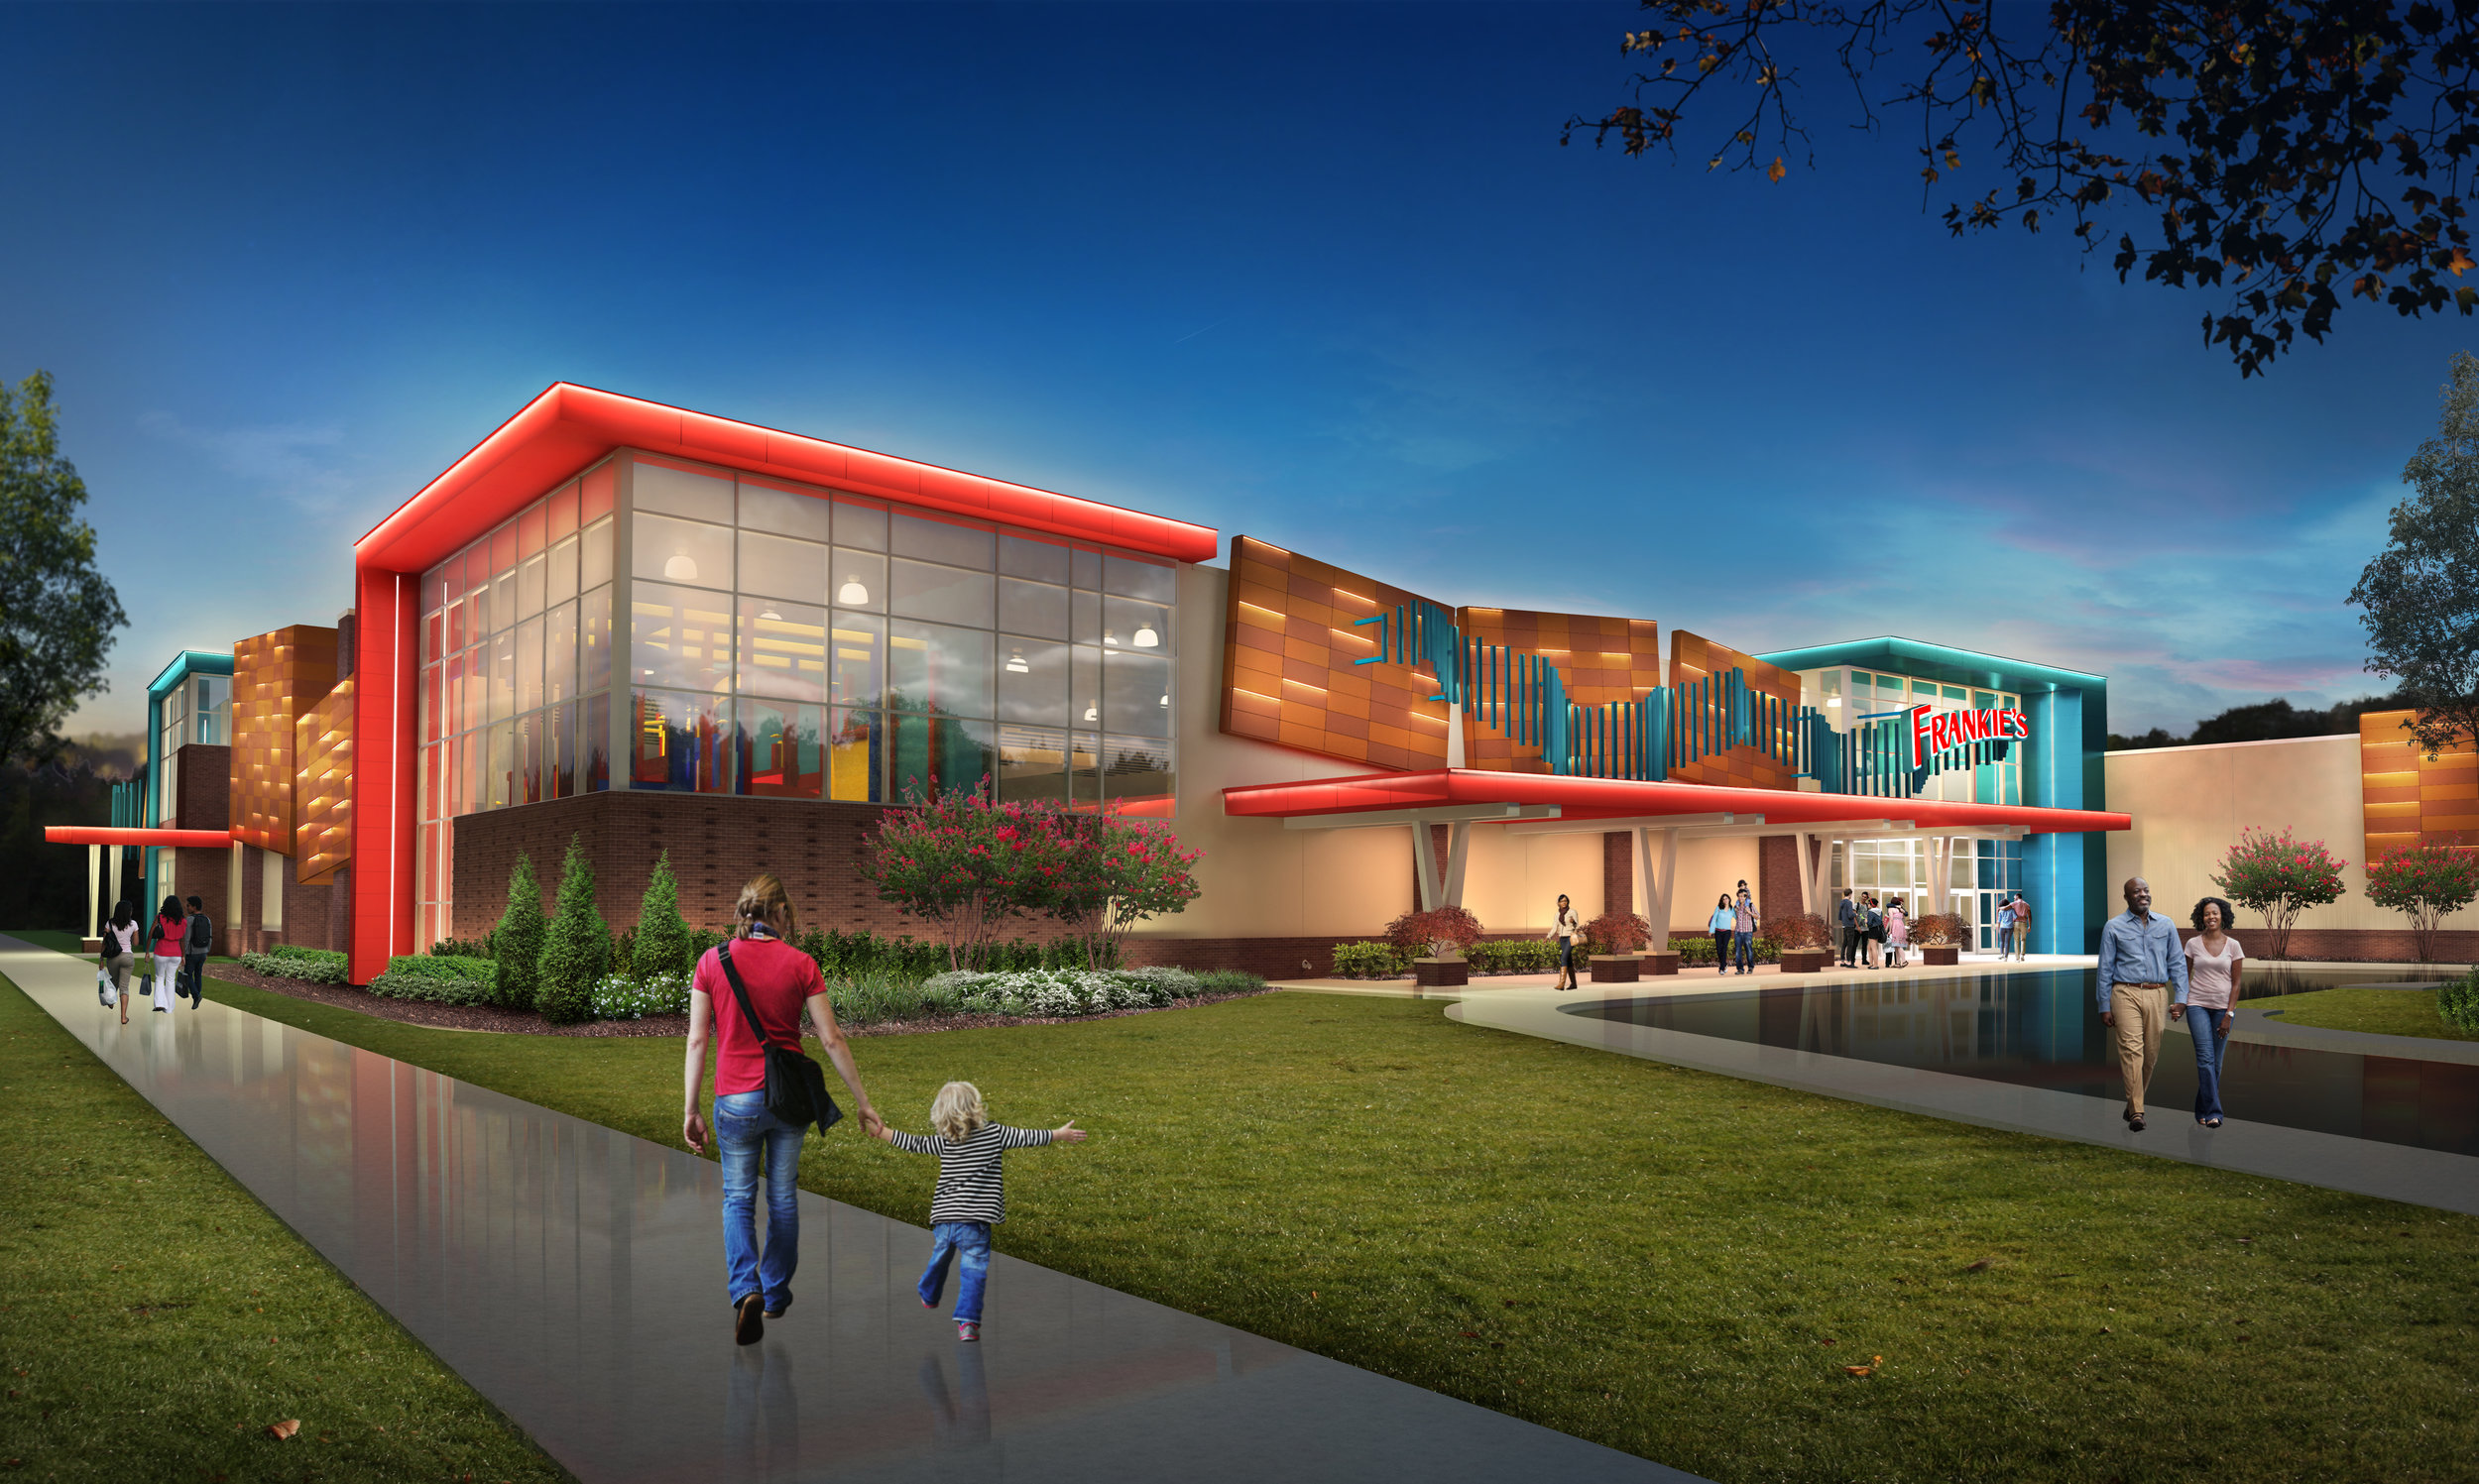 ADW-Entertainment-Frankie's-Fun-Park-Huntersville-NC-Exterior-Rendering.jpg